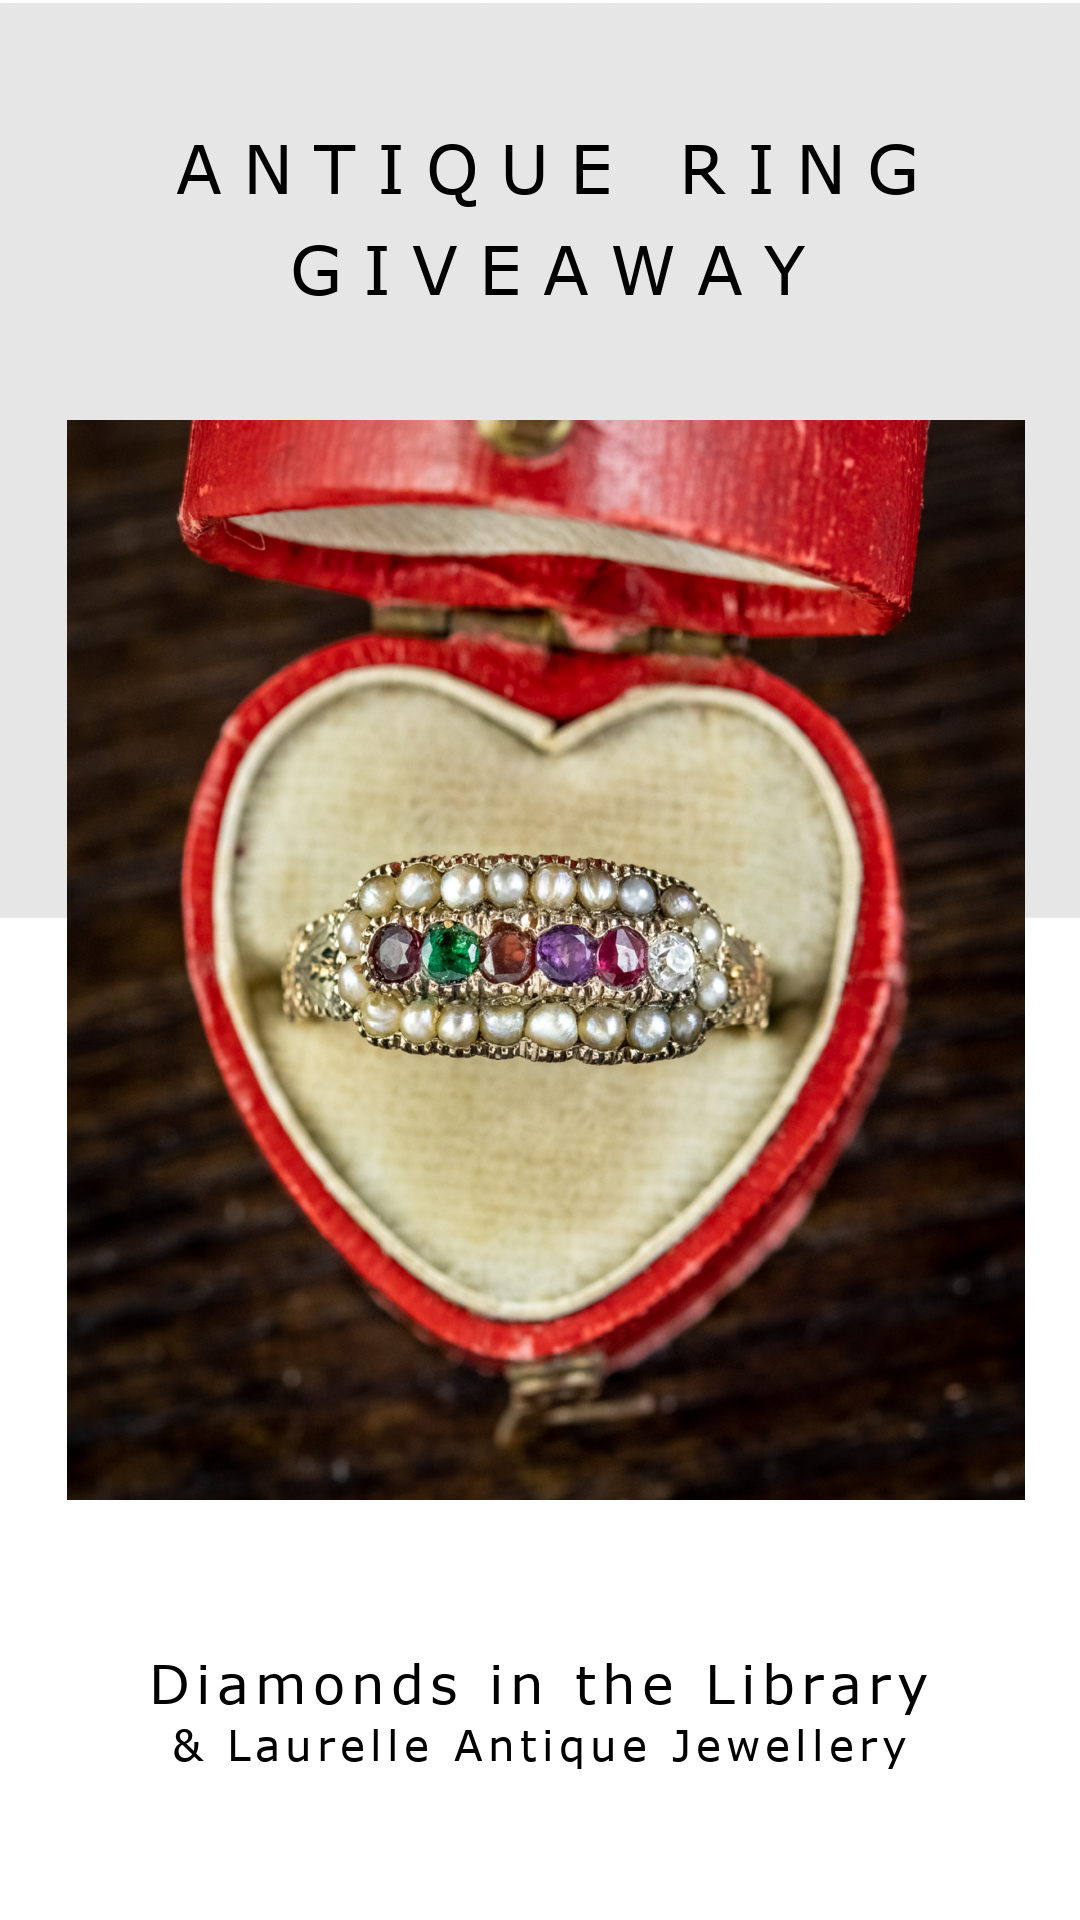 Jewelry giveaway! Win this Victorian acrostic ring from Laurelle Antique Jewellery. The gems spell REGARD.